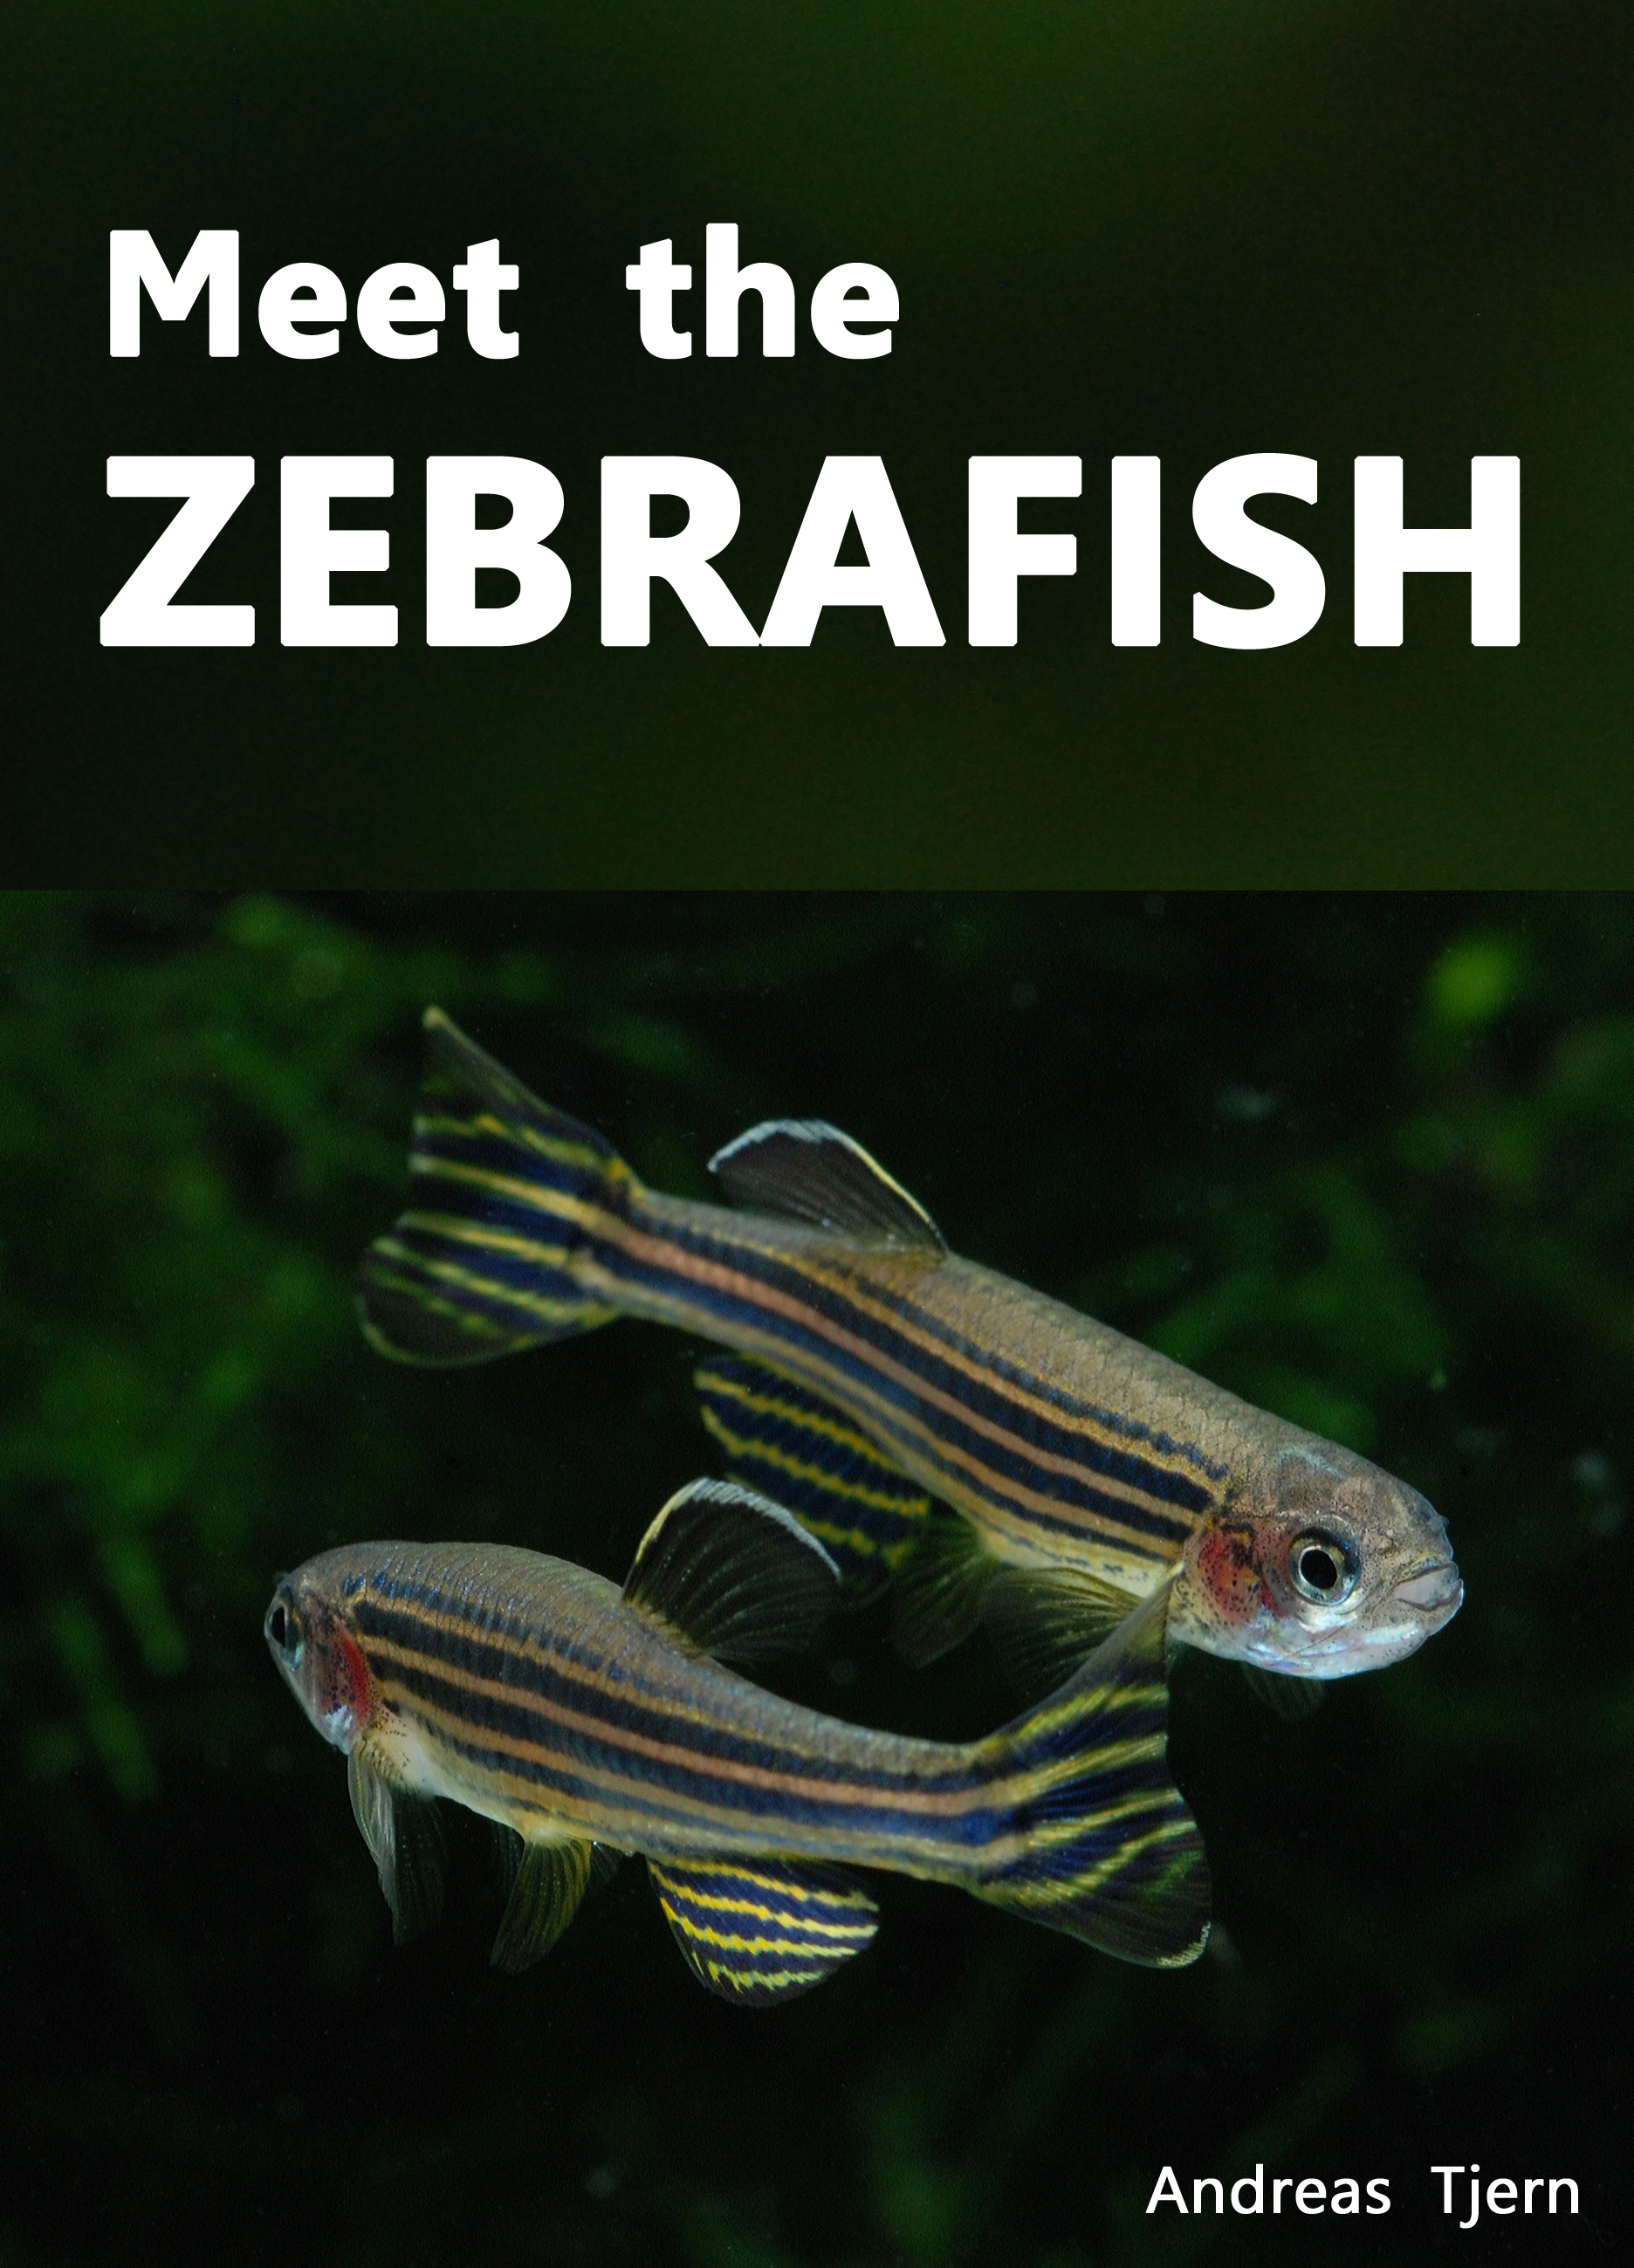 Meet the Zebrafish. A Short Guide to Keeping, Breeding and Understanding the Zebrafish (Danio rerio) in Your Home Aquarium